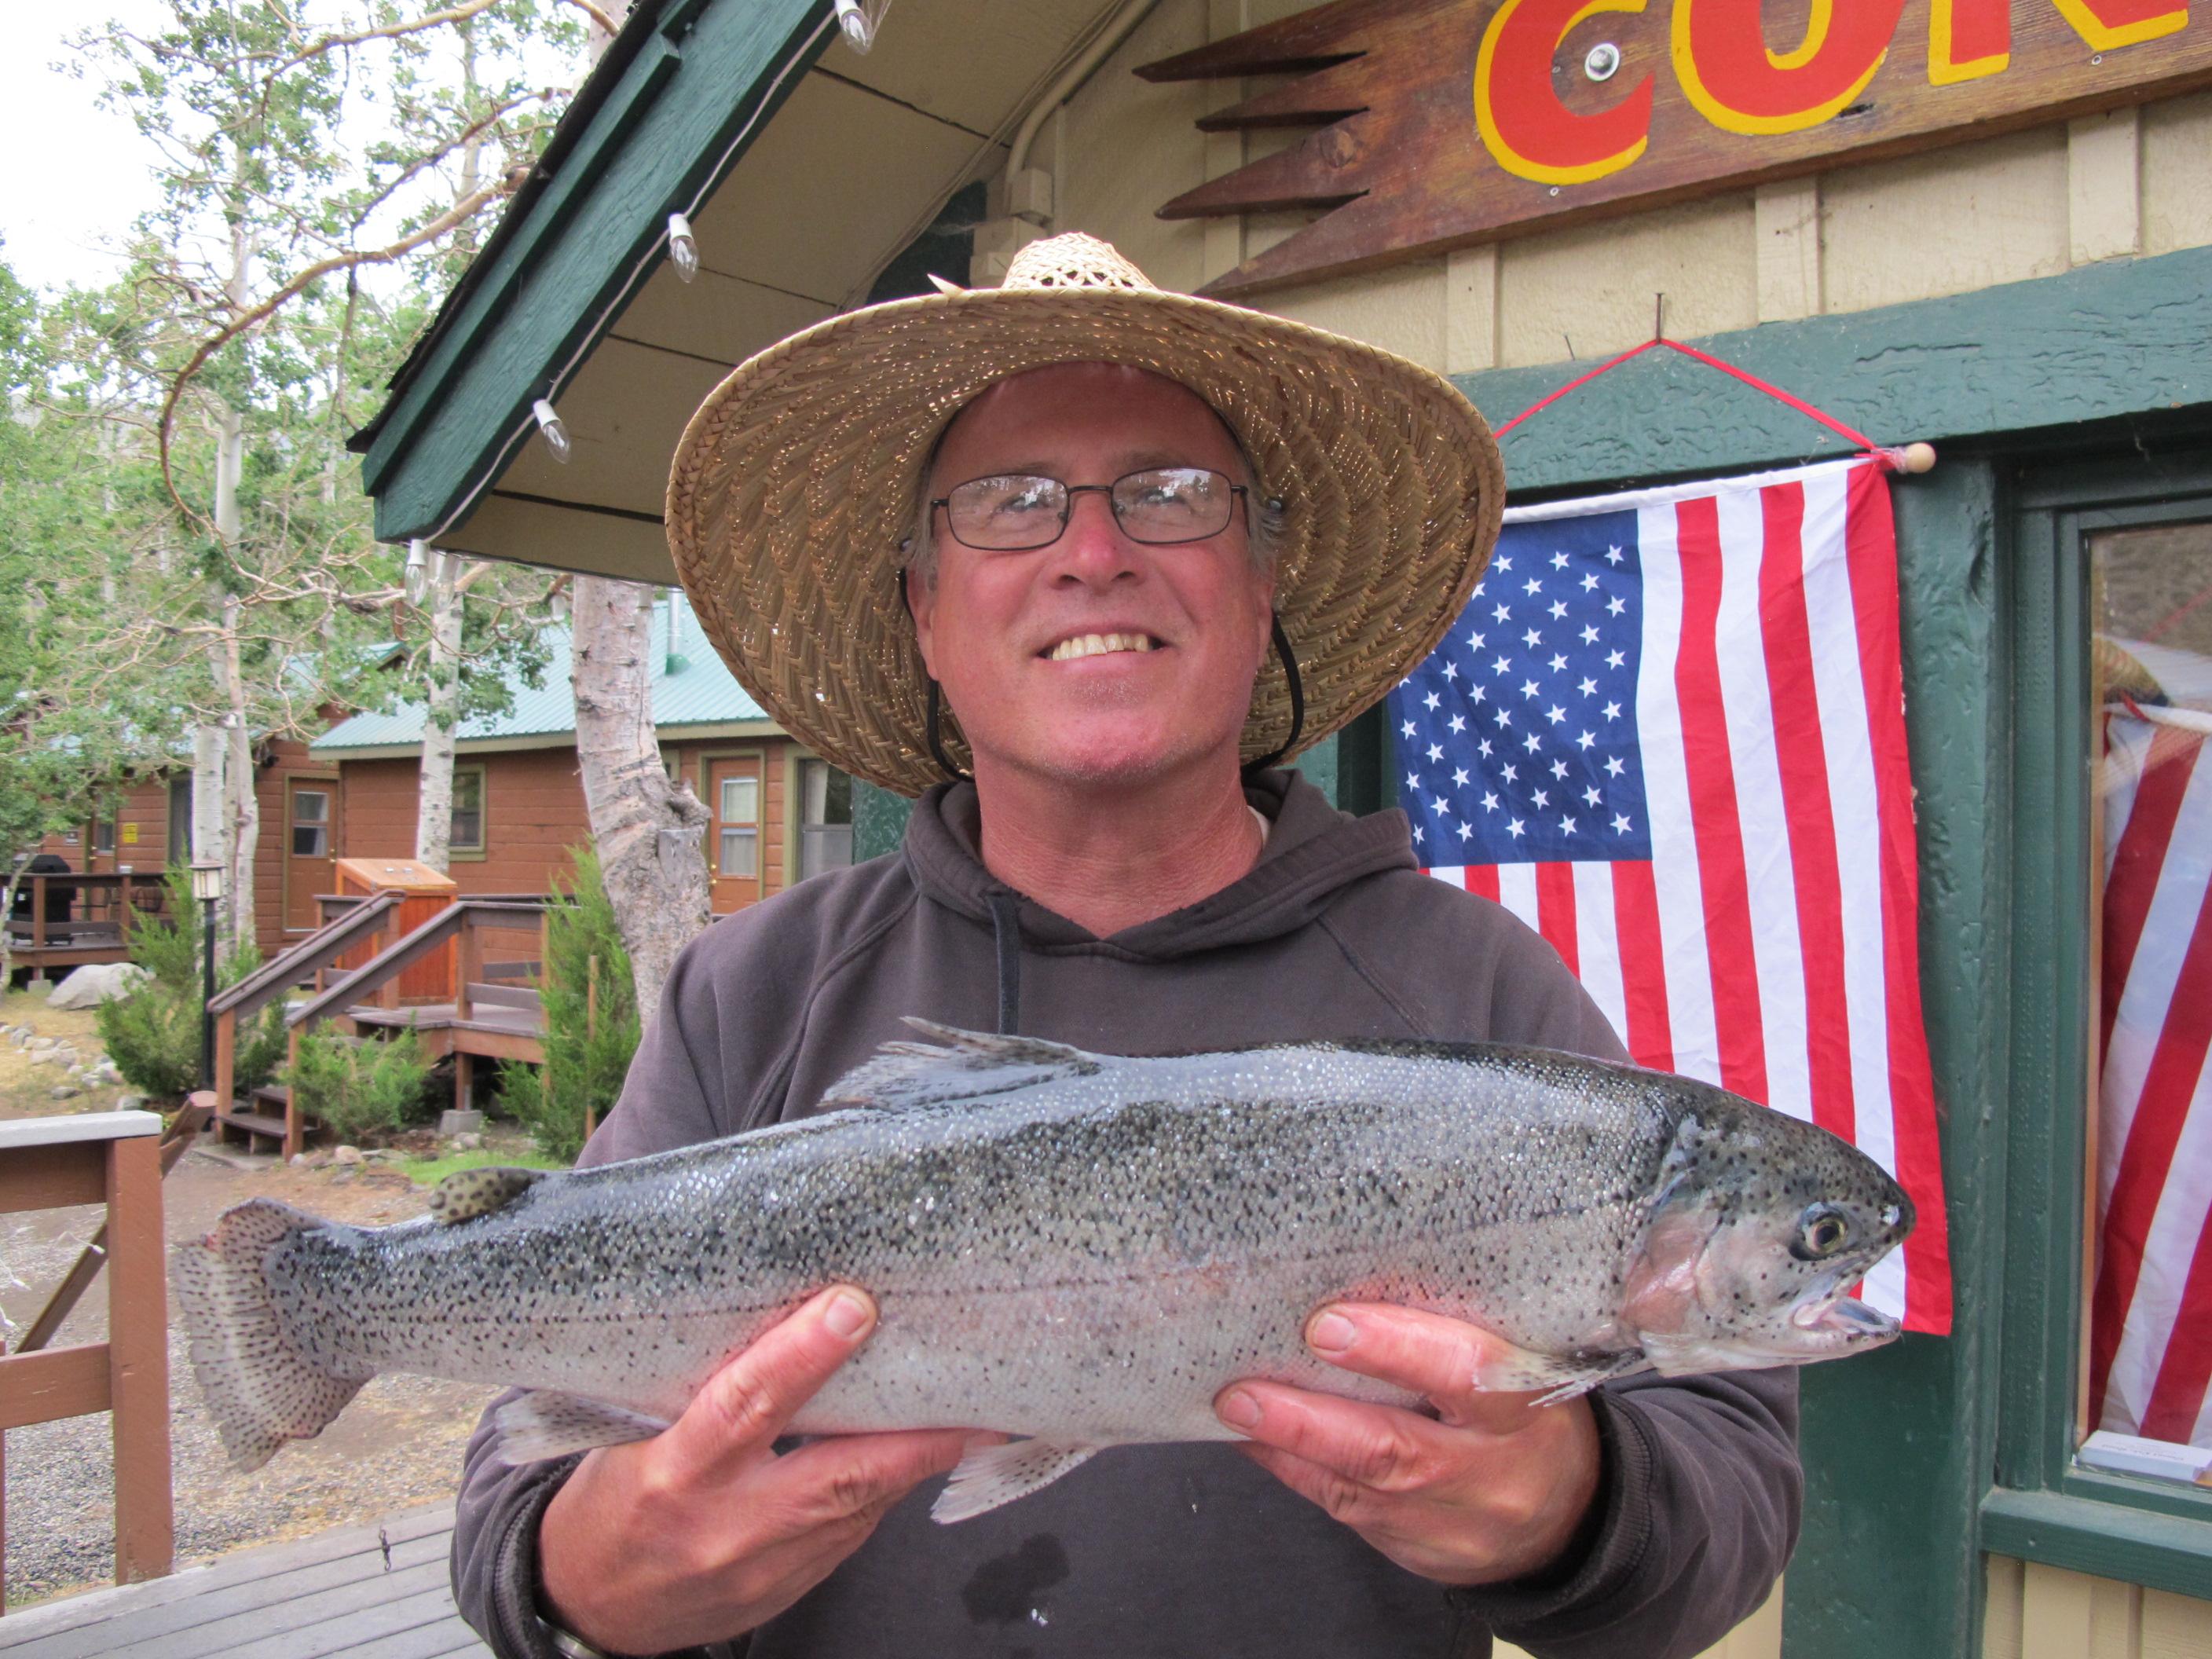 Fishing report july 19 2014 convict lake resort for Convict lake fishing report